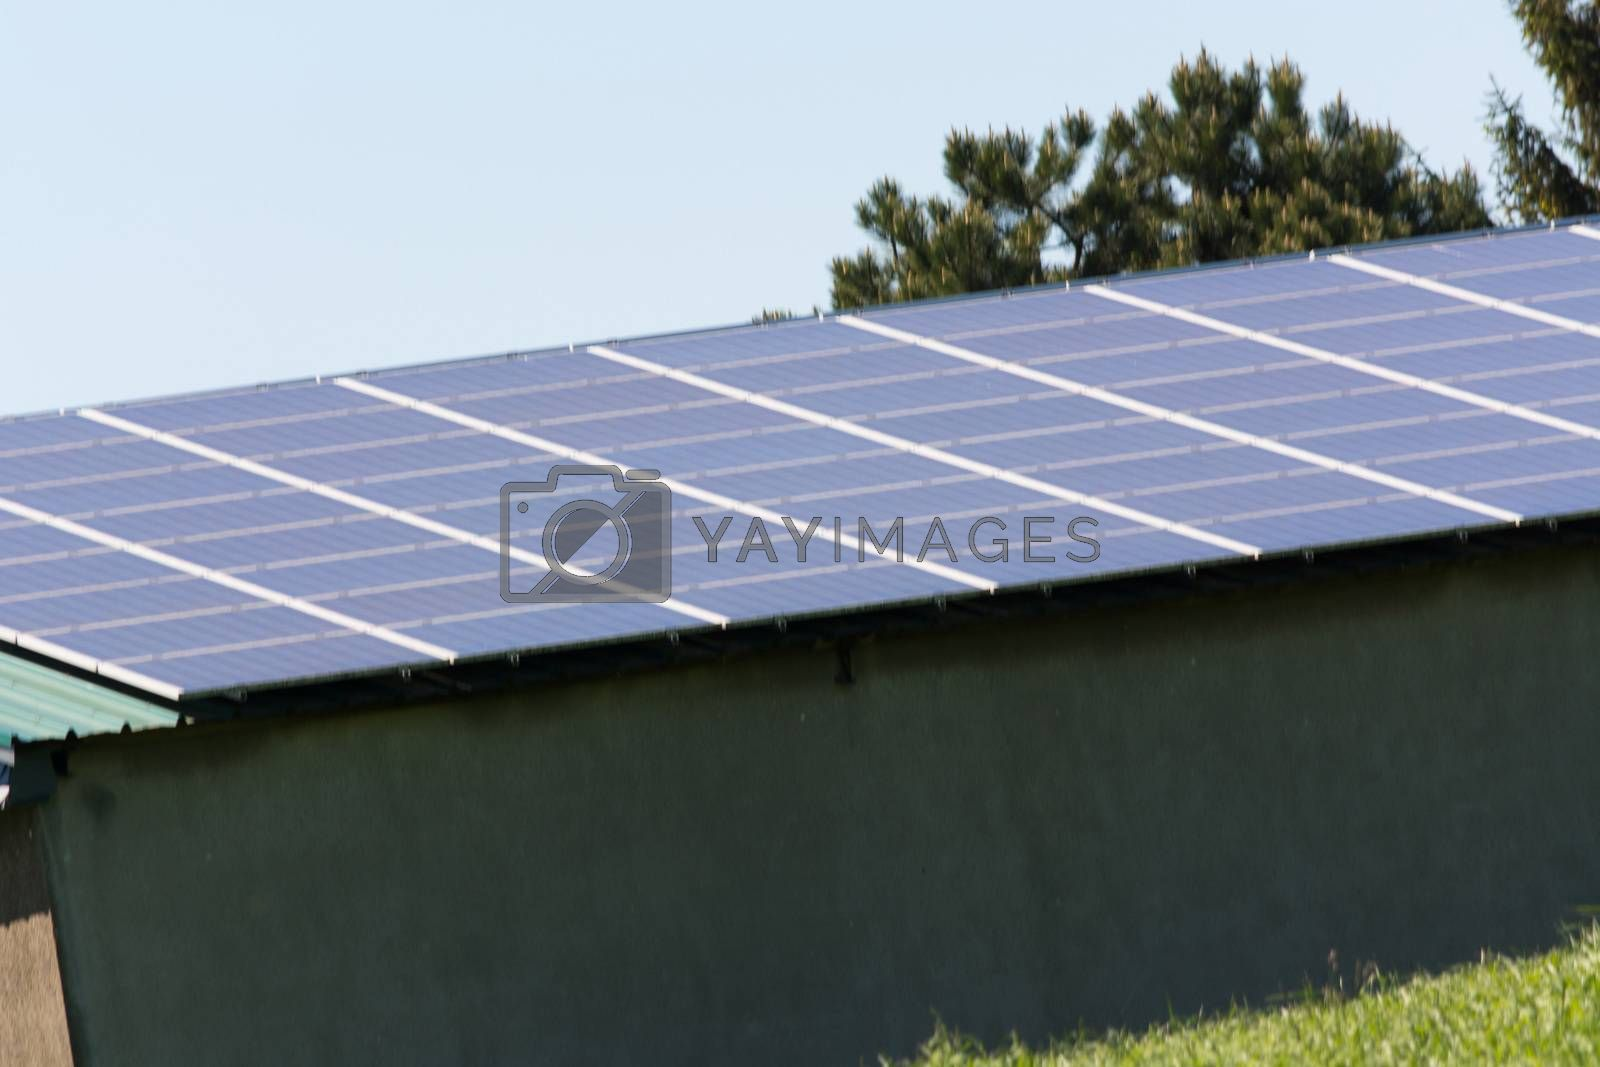 Solar panel, photovoltaic, alternative power source - concept of sustainable resources